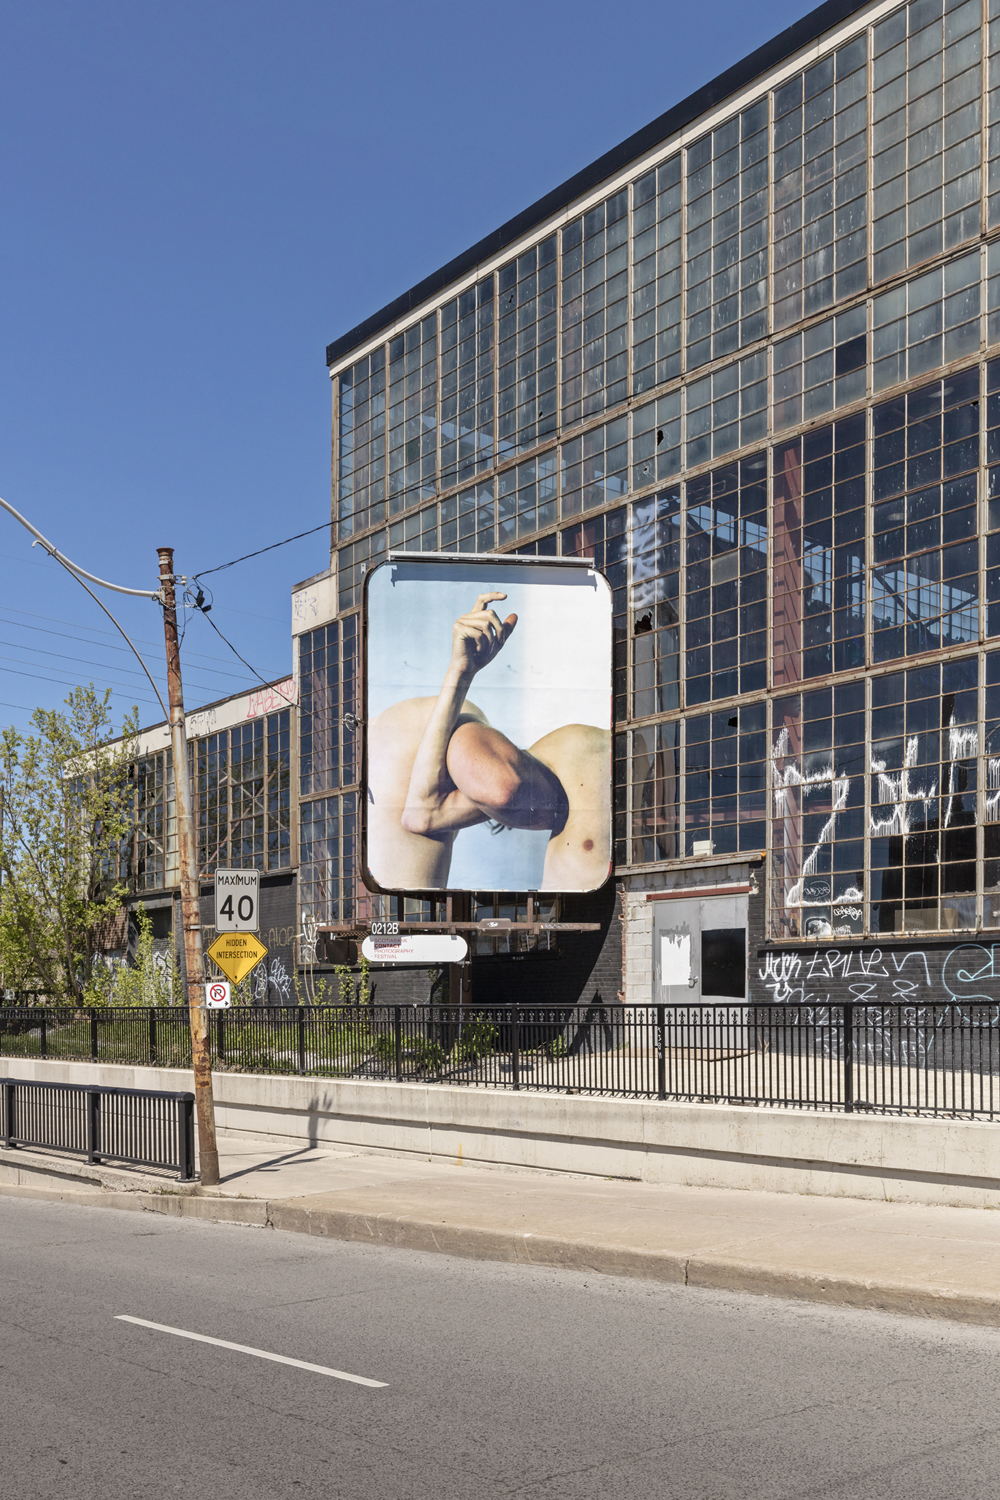 Steven Beckly, New Romantics, installation view of 4 billboards at Dovercourt Rd and Dupont St. 2017. Photo by Toni Hafkenscheid.